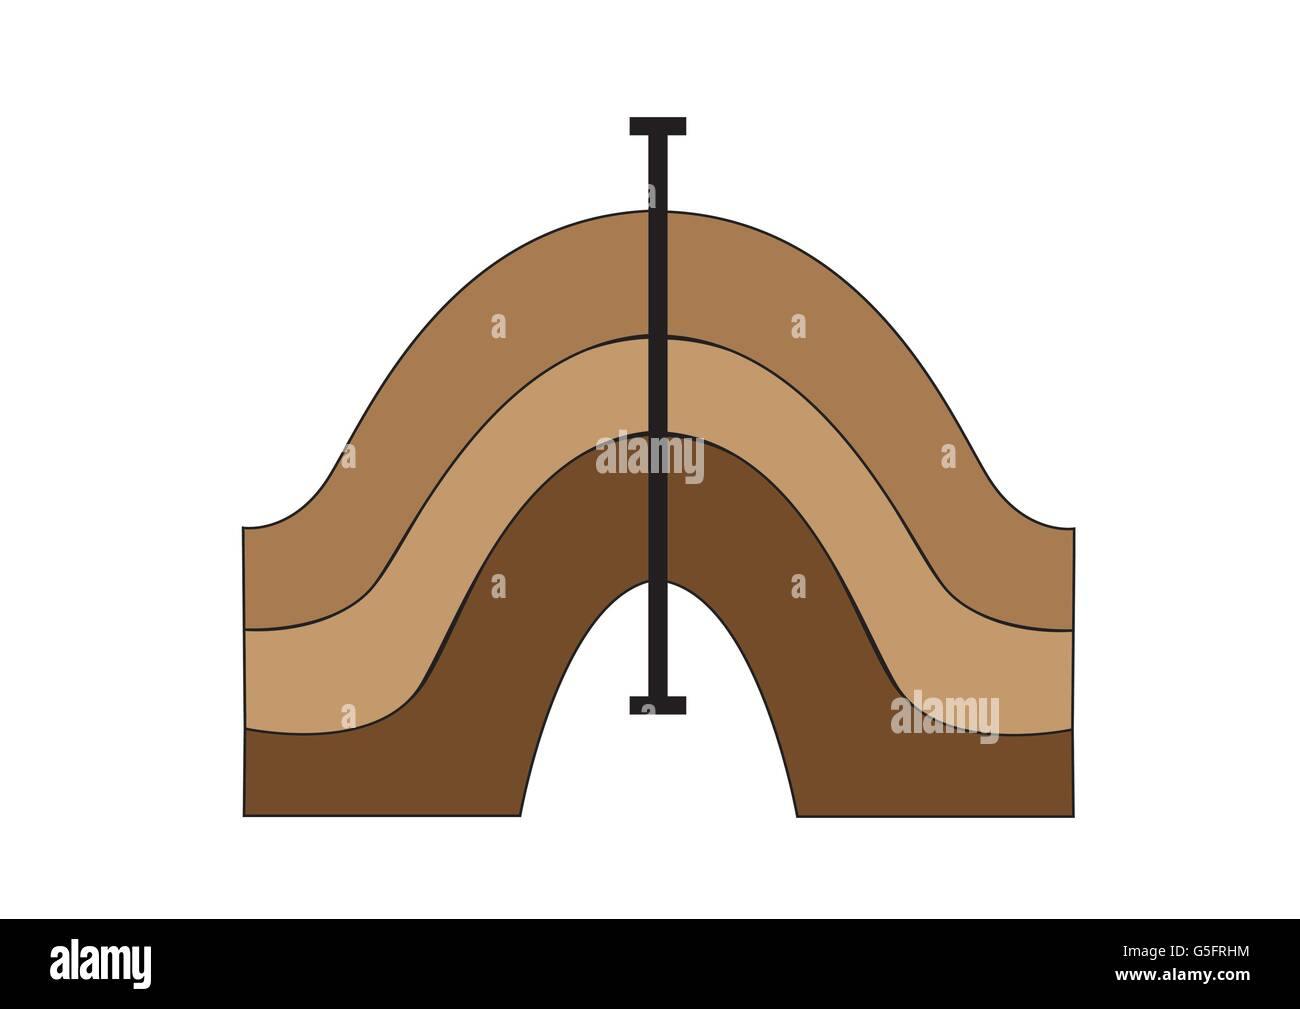 Diagram Of A Symmetrical Fold Stock Photo